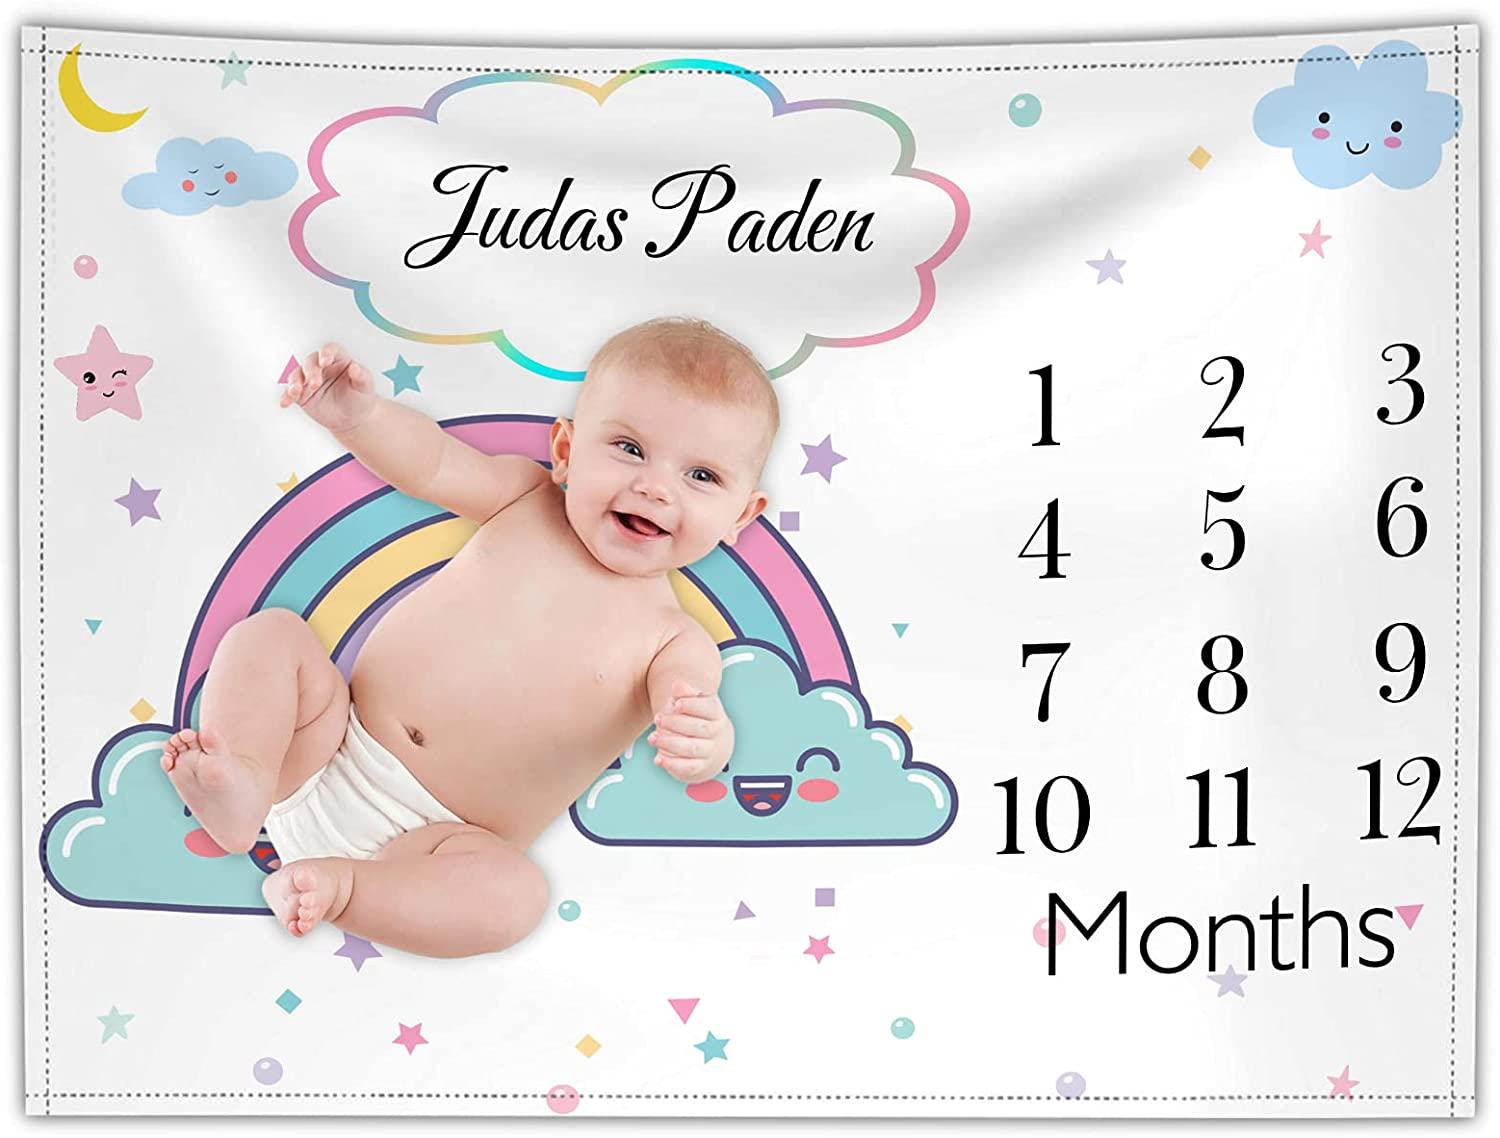 Custom Baby Monthly Milestone Blankets Personalized Rainbow Name Babies  Growth Chart Customize Animals Blanket for Boy Girl 20x20cm